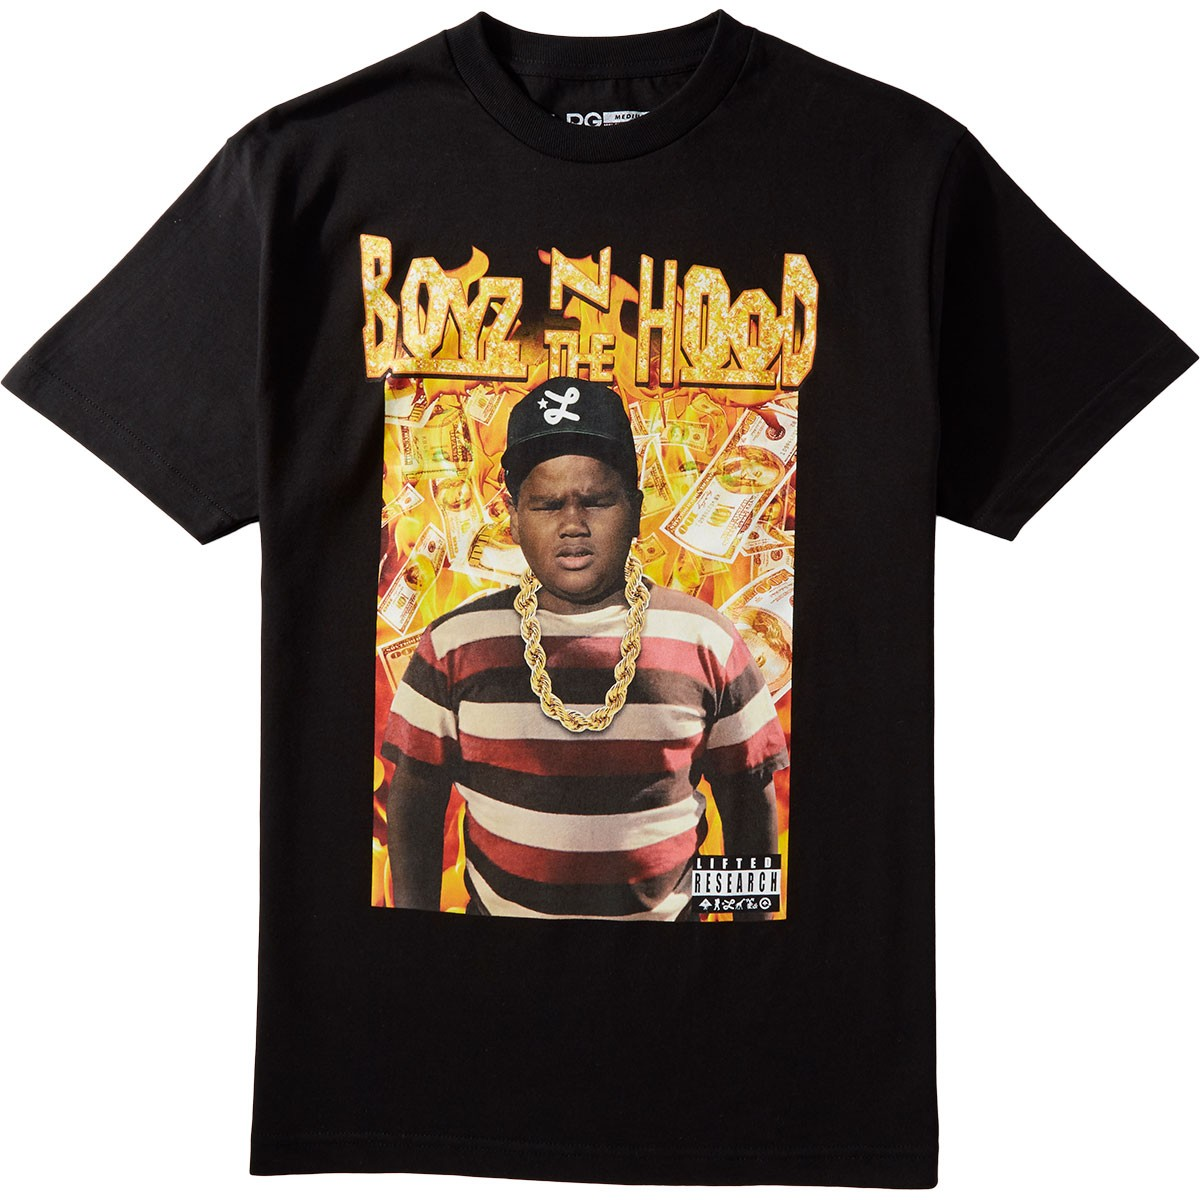 Lrg X Boyz N The Hood Dough Boy T Shirt Black